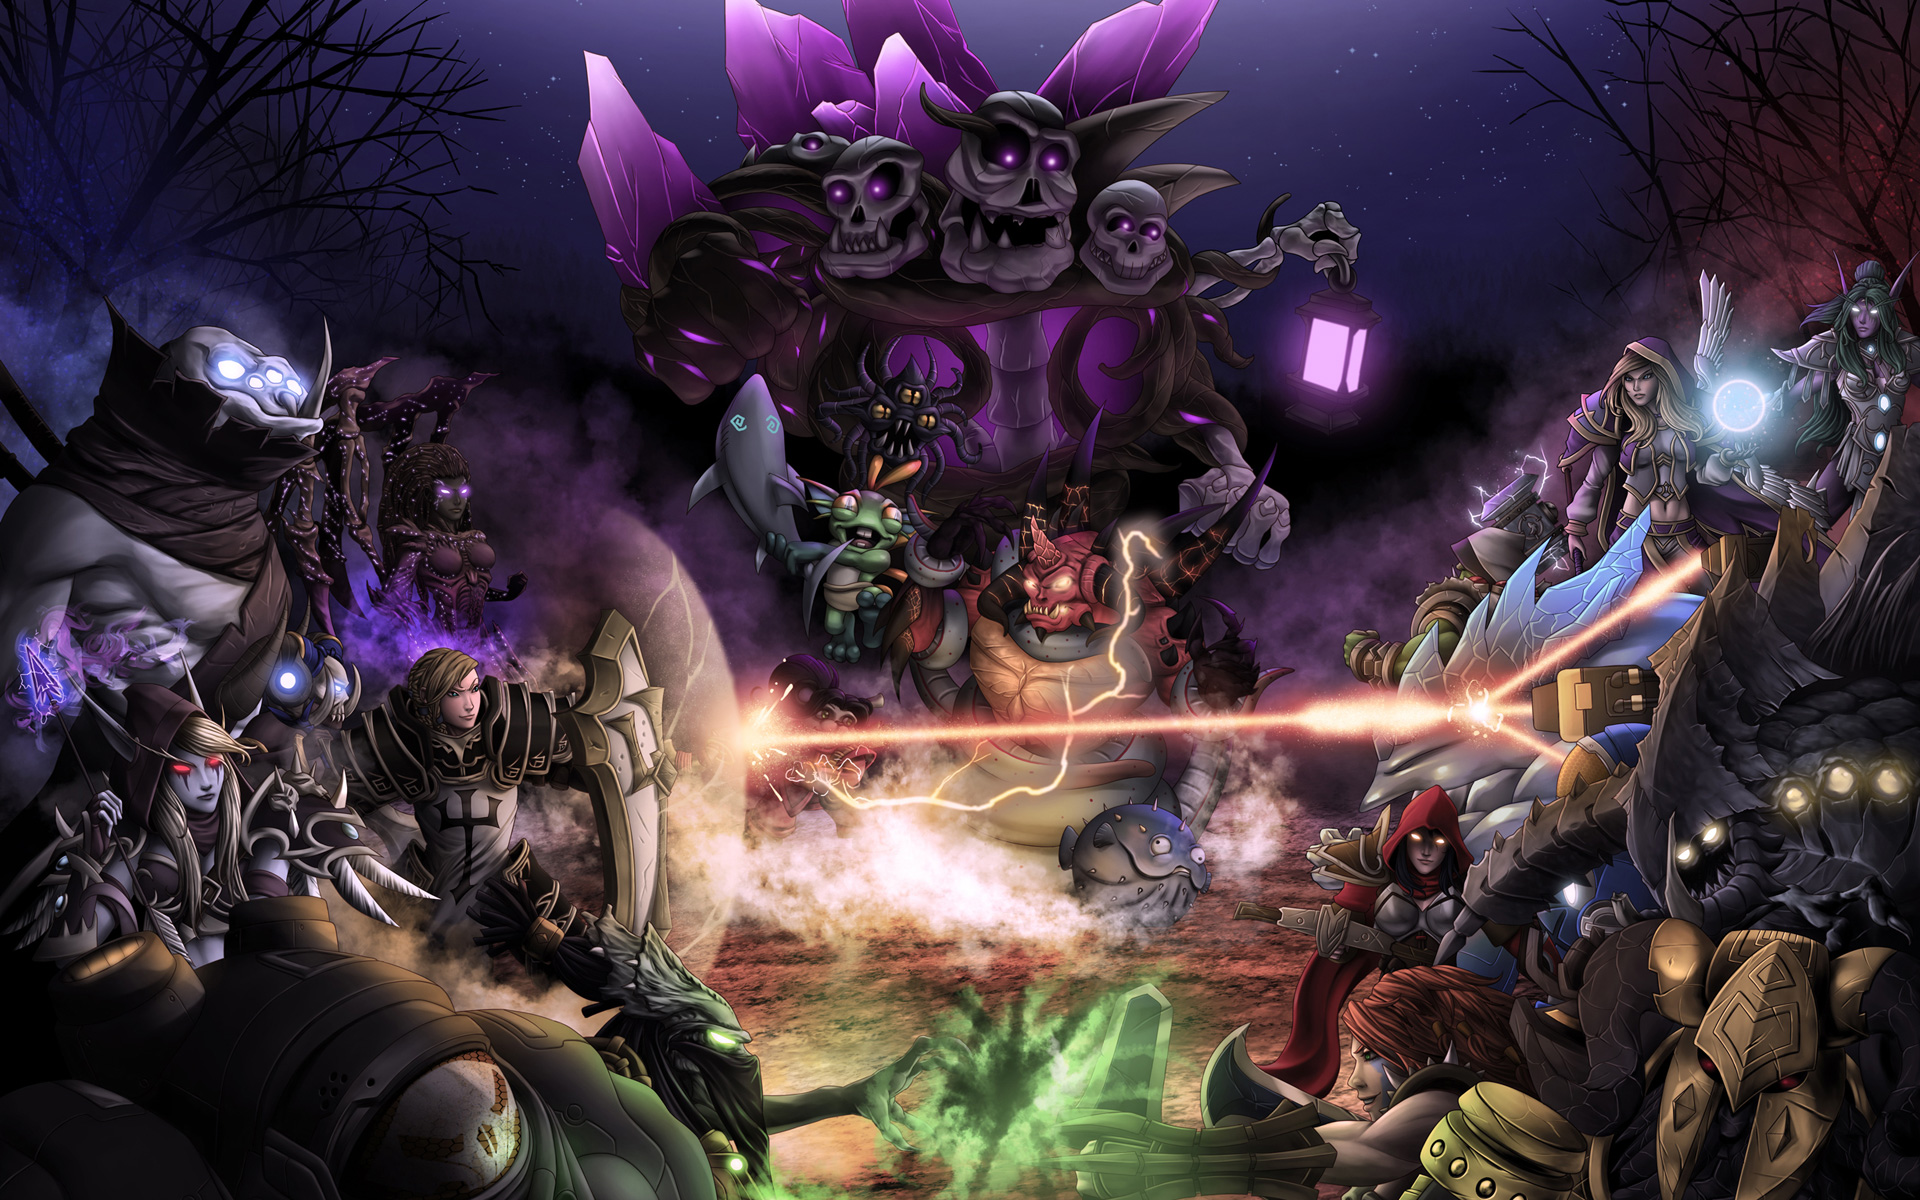 Free Heroes of the Storm Wallpaper in 1920x1200